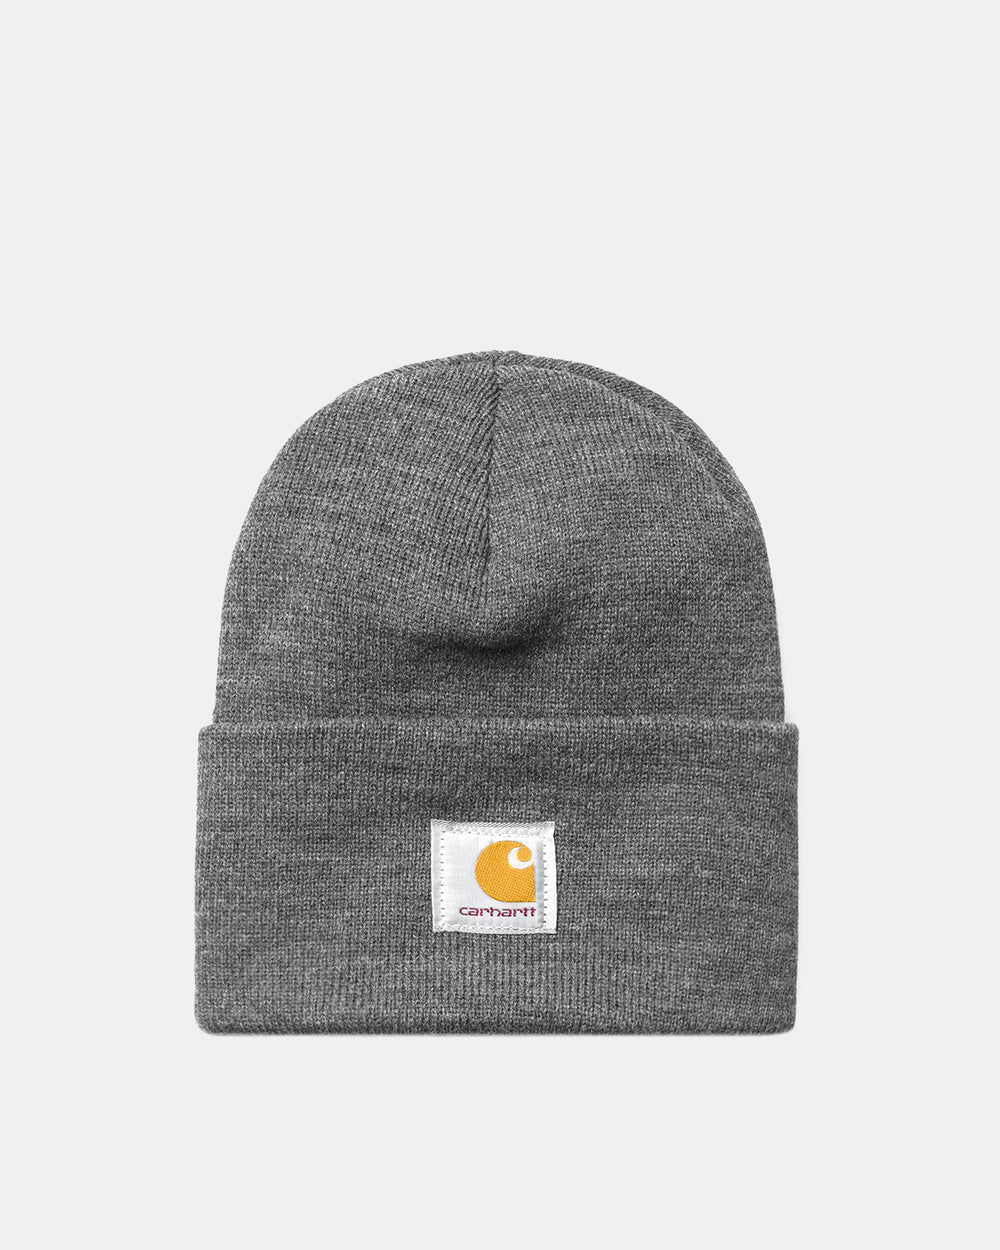 Carhartt WIP - Acrylic Watch Hat (Dark Grey Heather)